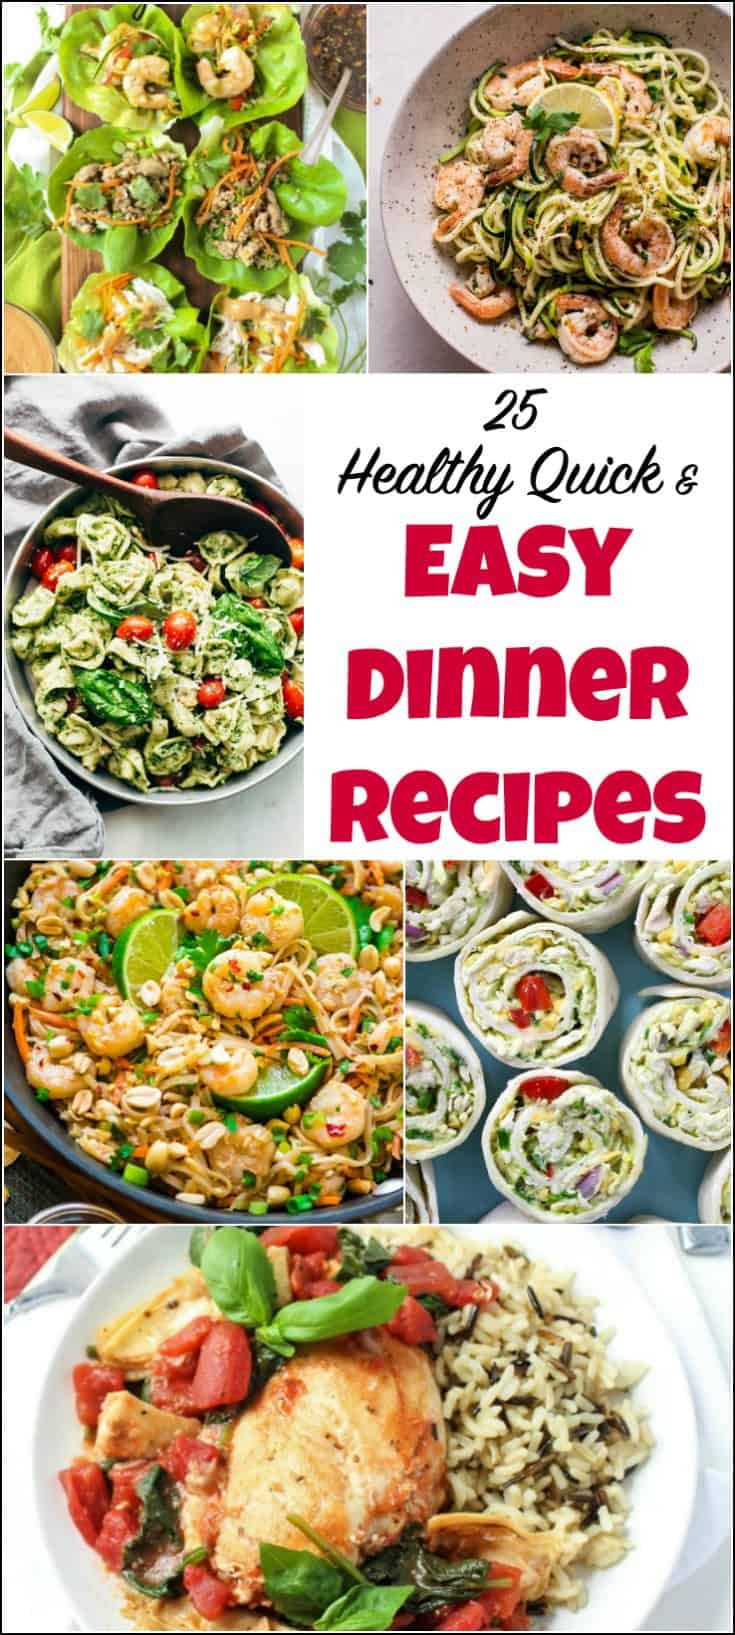 25 Healthy Quick and Easy Dinner Recipes to Make at Home. Find dinner ideas, easy dinner dishes, recipes for an easy dinner, easy dinner ideas, easy dinner meals, quick easy dinner recipes, easy to make dinner recipes, easy ideas for dinner, easy dinner ideas, delicious easy dinner recipes, easy meals for dinner, healthy dinner ideas, healthy dinner recipes, fast easy dinner, easy recipe for dinner, easy dinner receipes